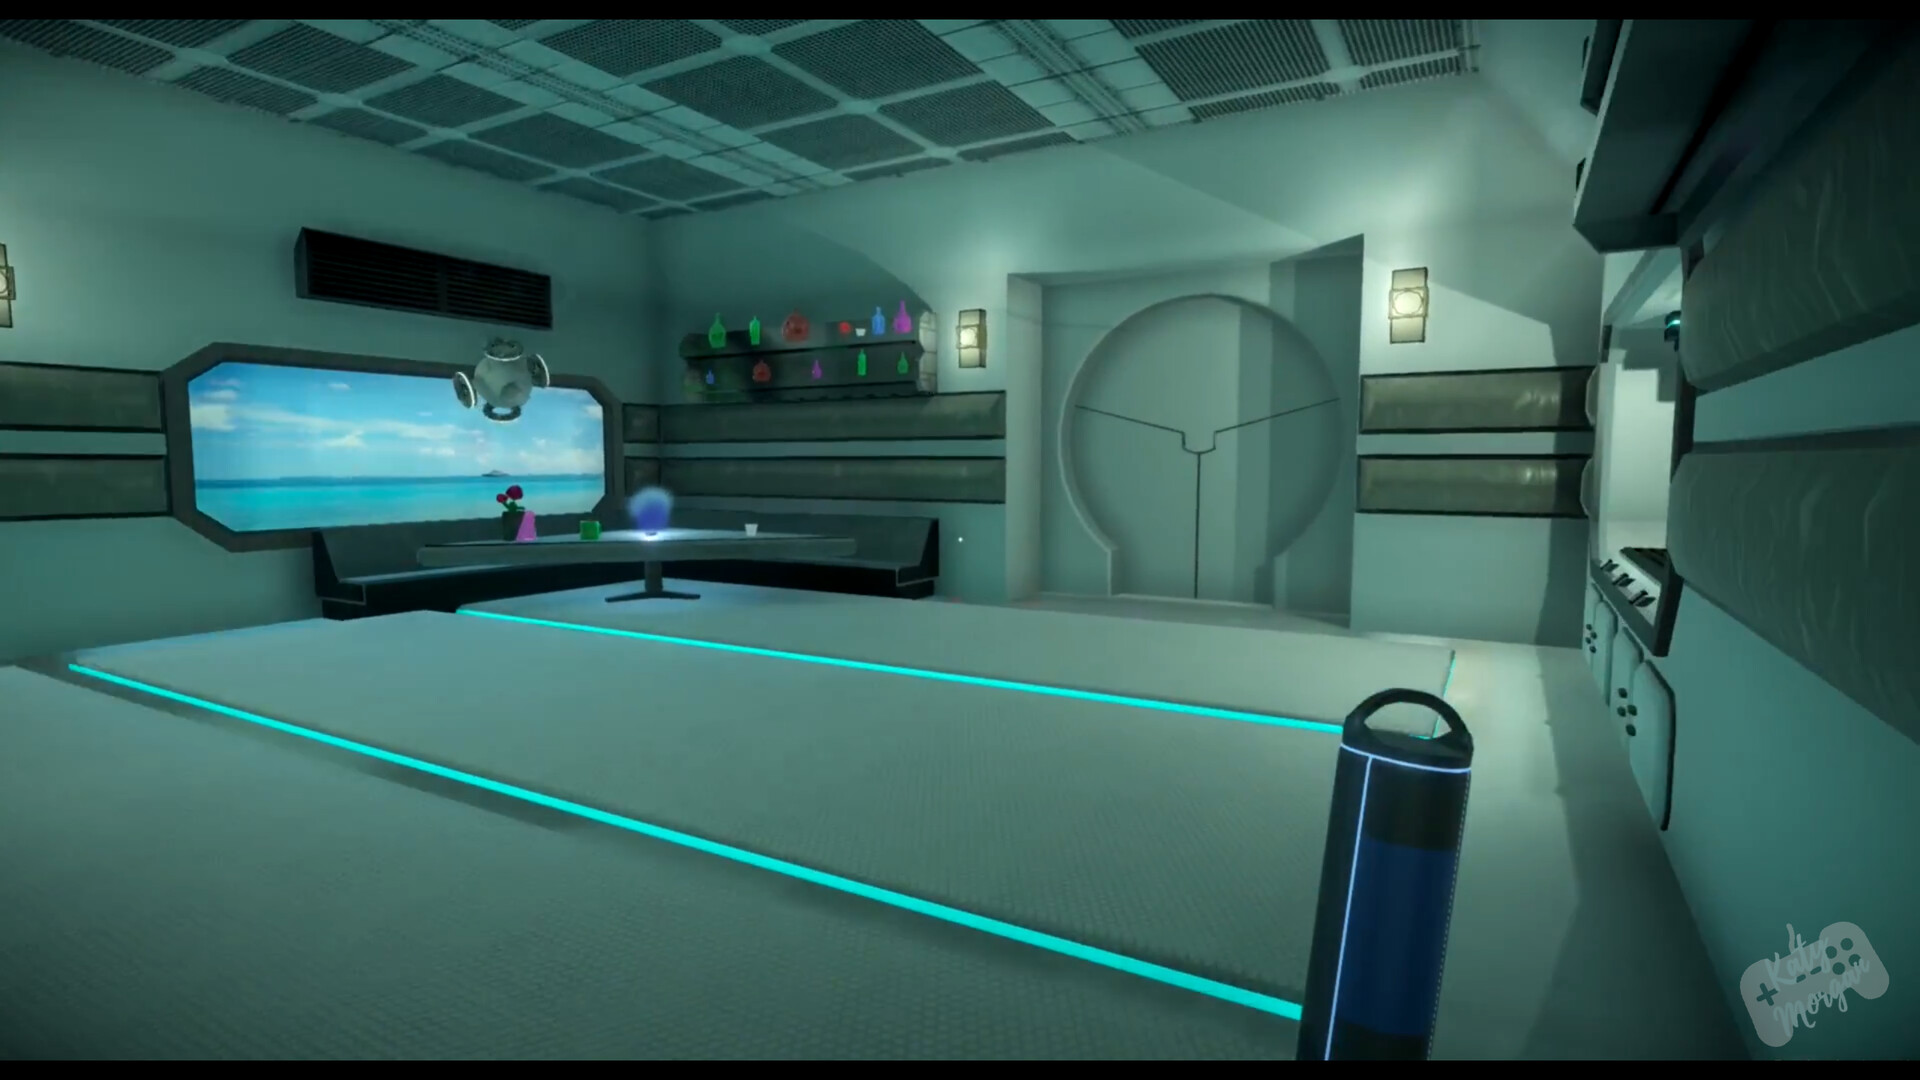 Space Kitchen - everything you see made in Maya by myself apart from capsule which was made by Jack Kheir.